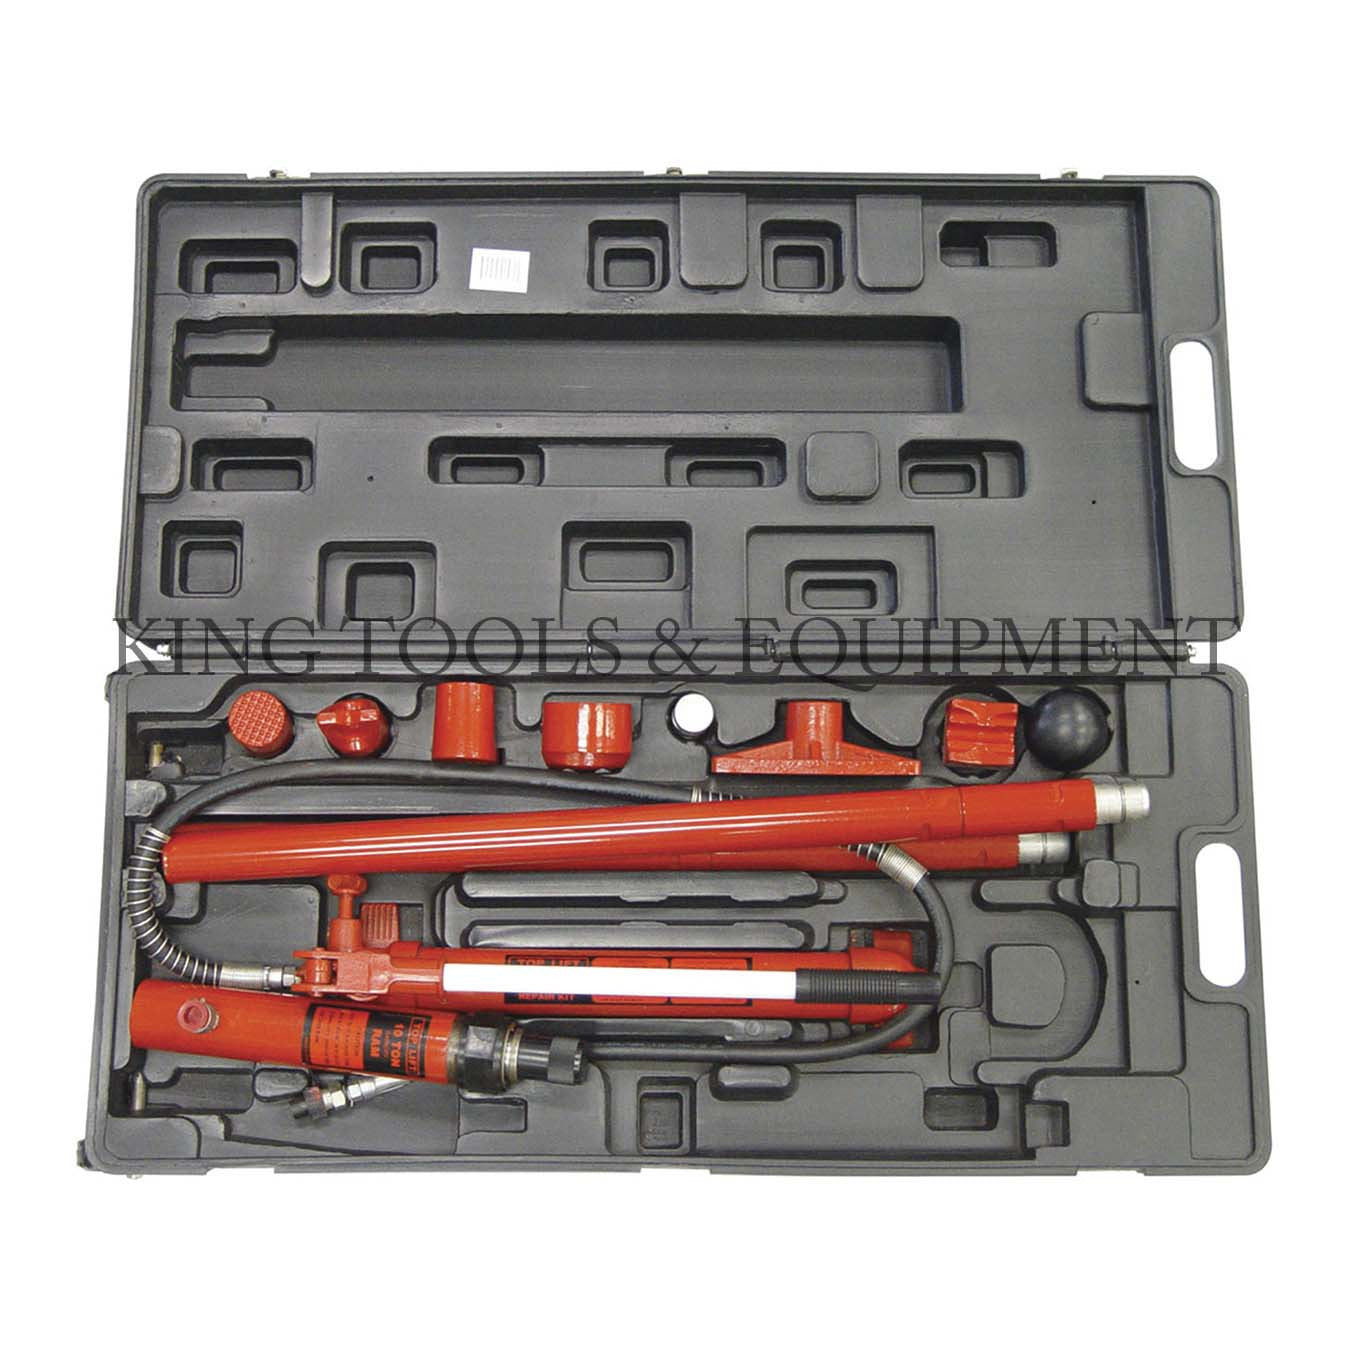 10 Ton Hydraulic BODY FRAME REPAIR KIT - 0246T-0 – King Tools ...